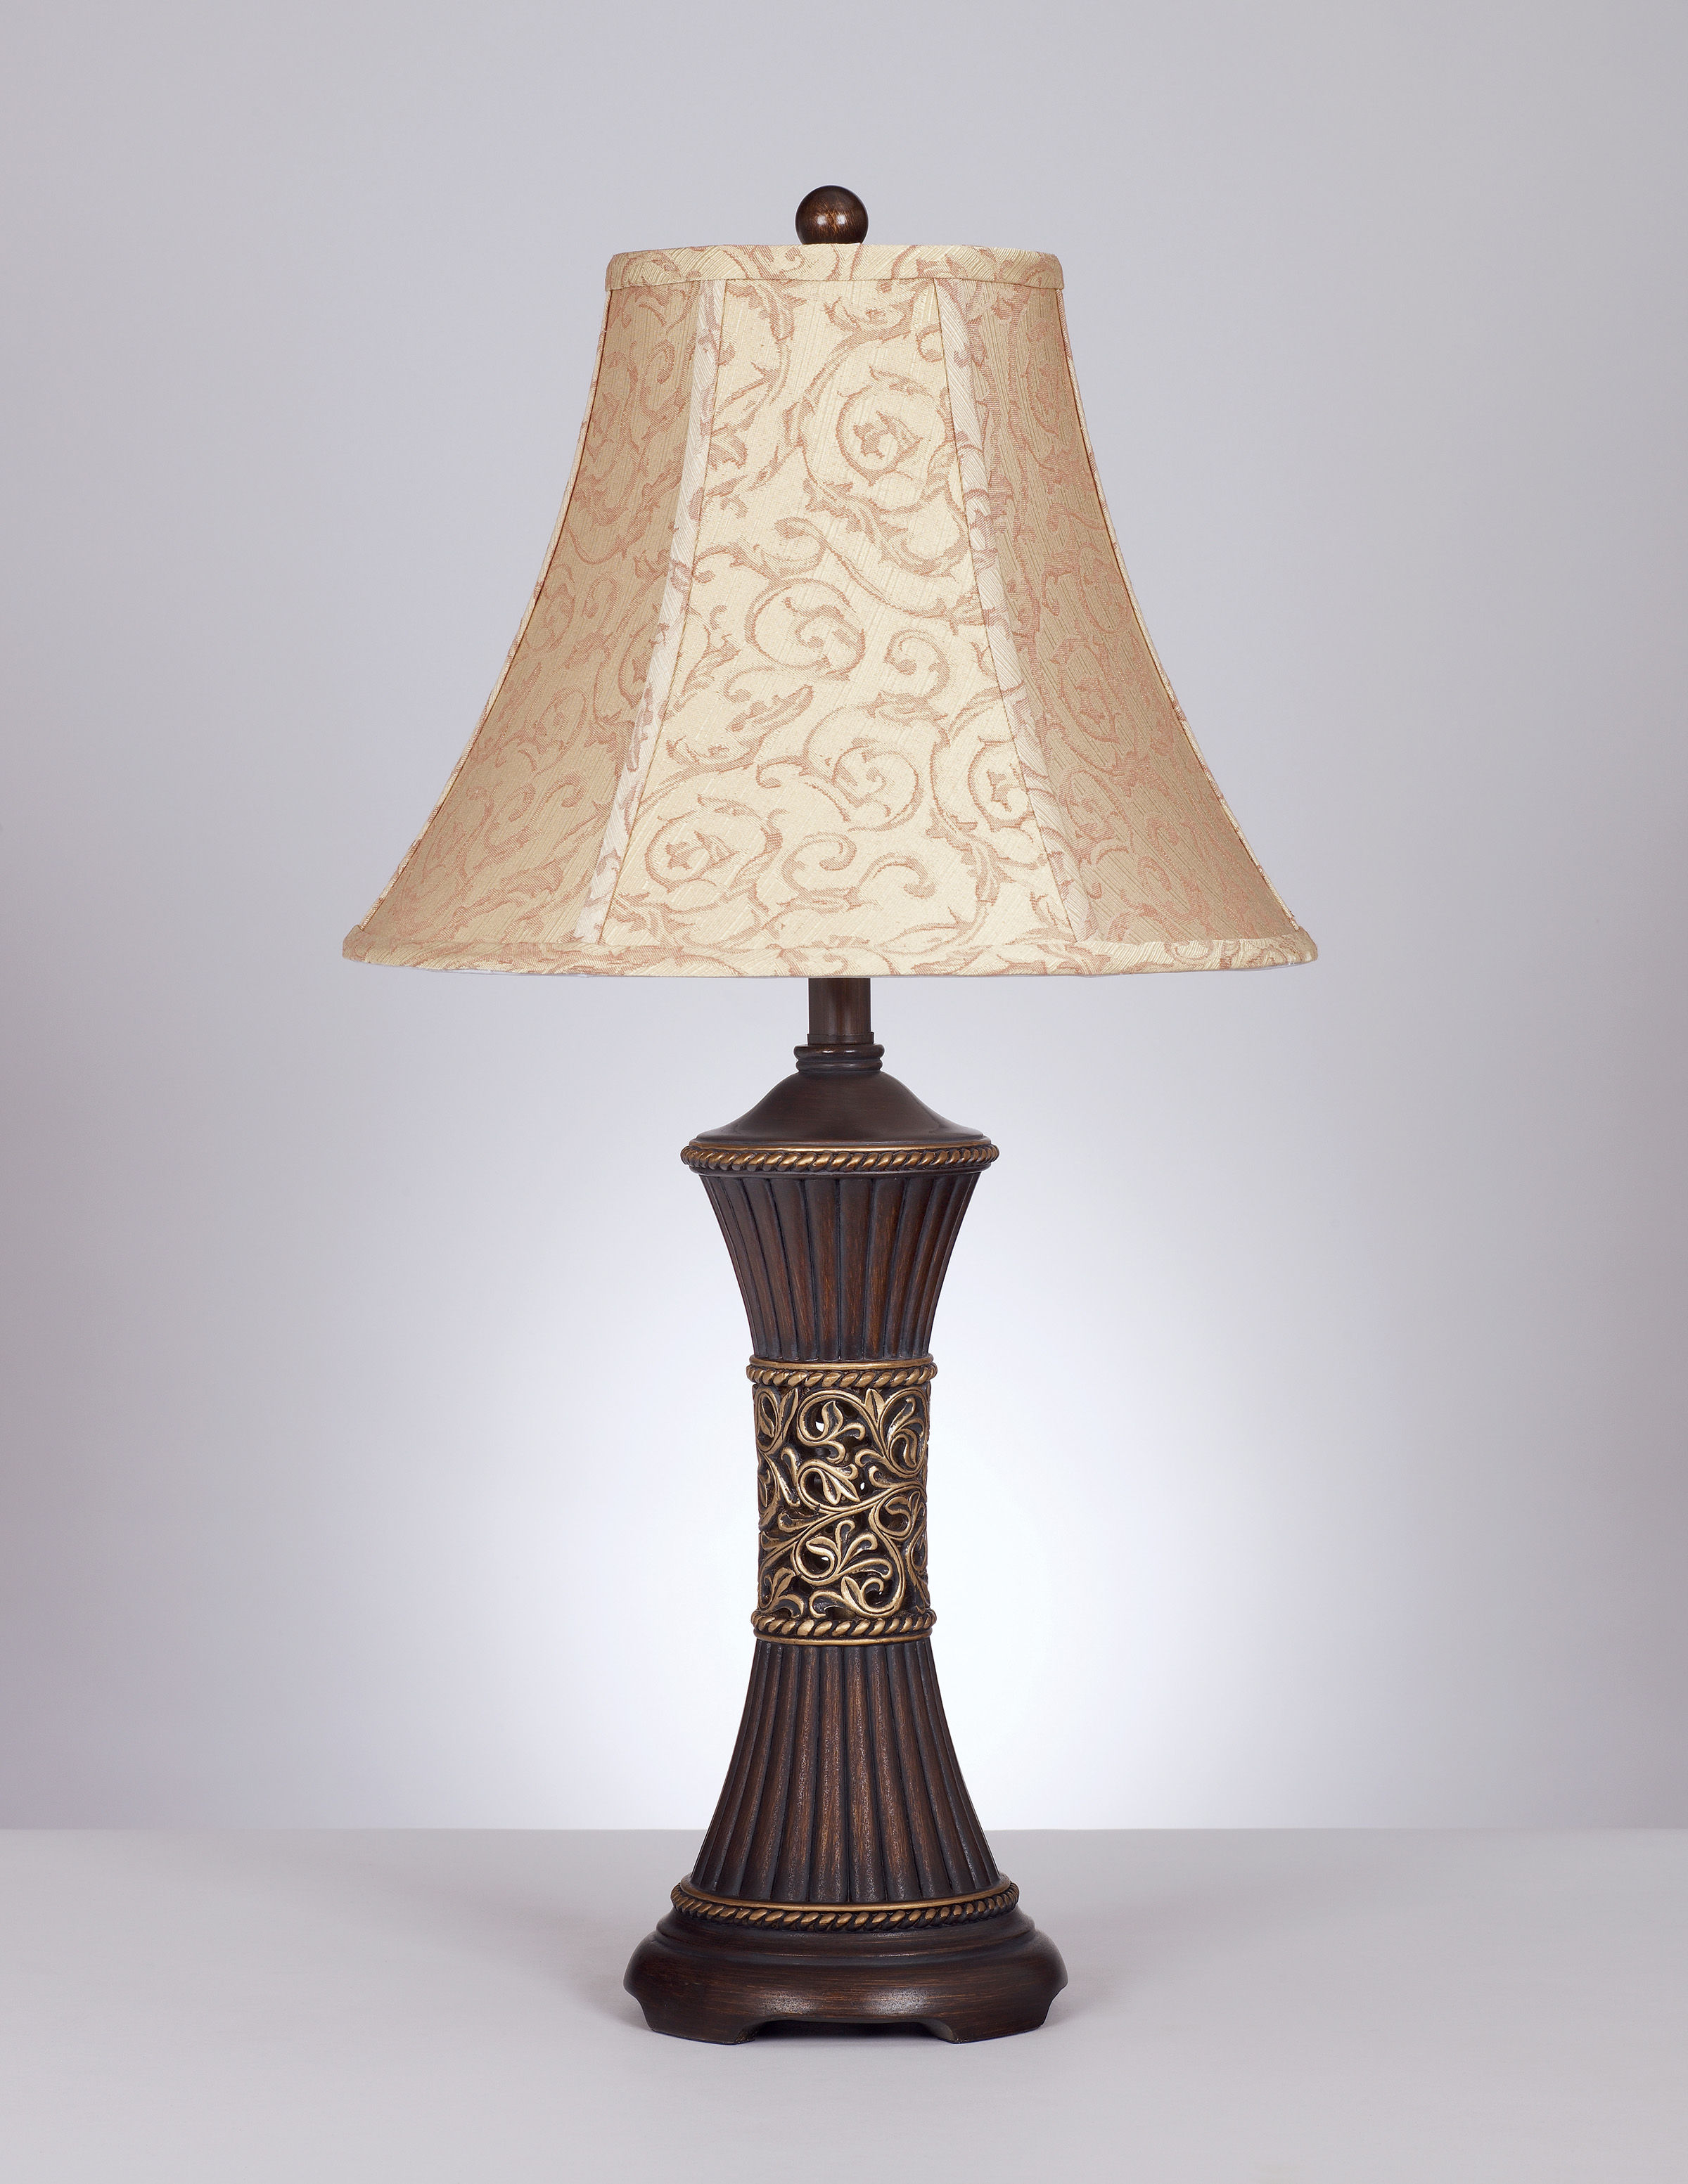 2 Ashley Furniture Mariana Bronze Table Lamps The Classy Home